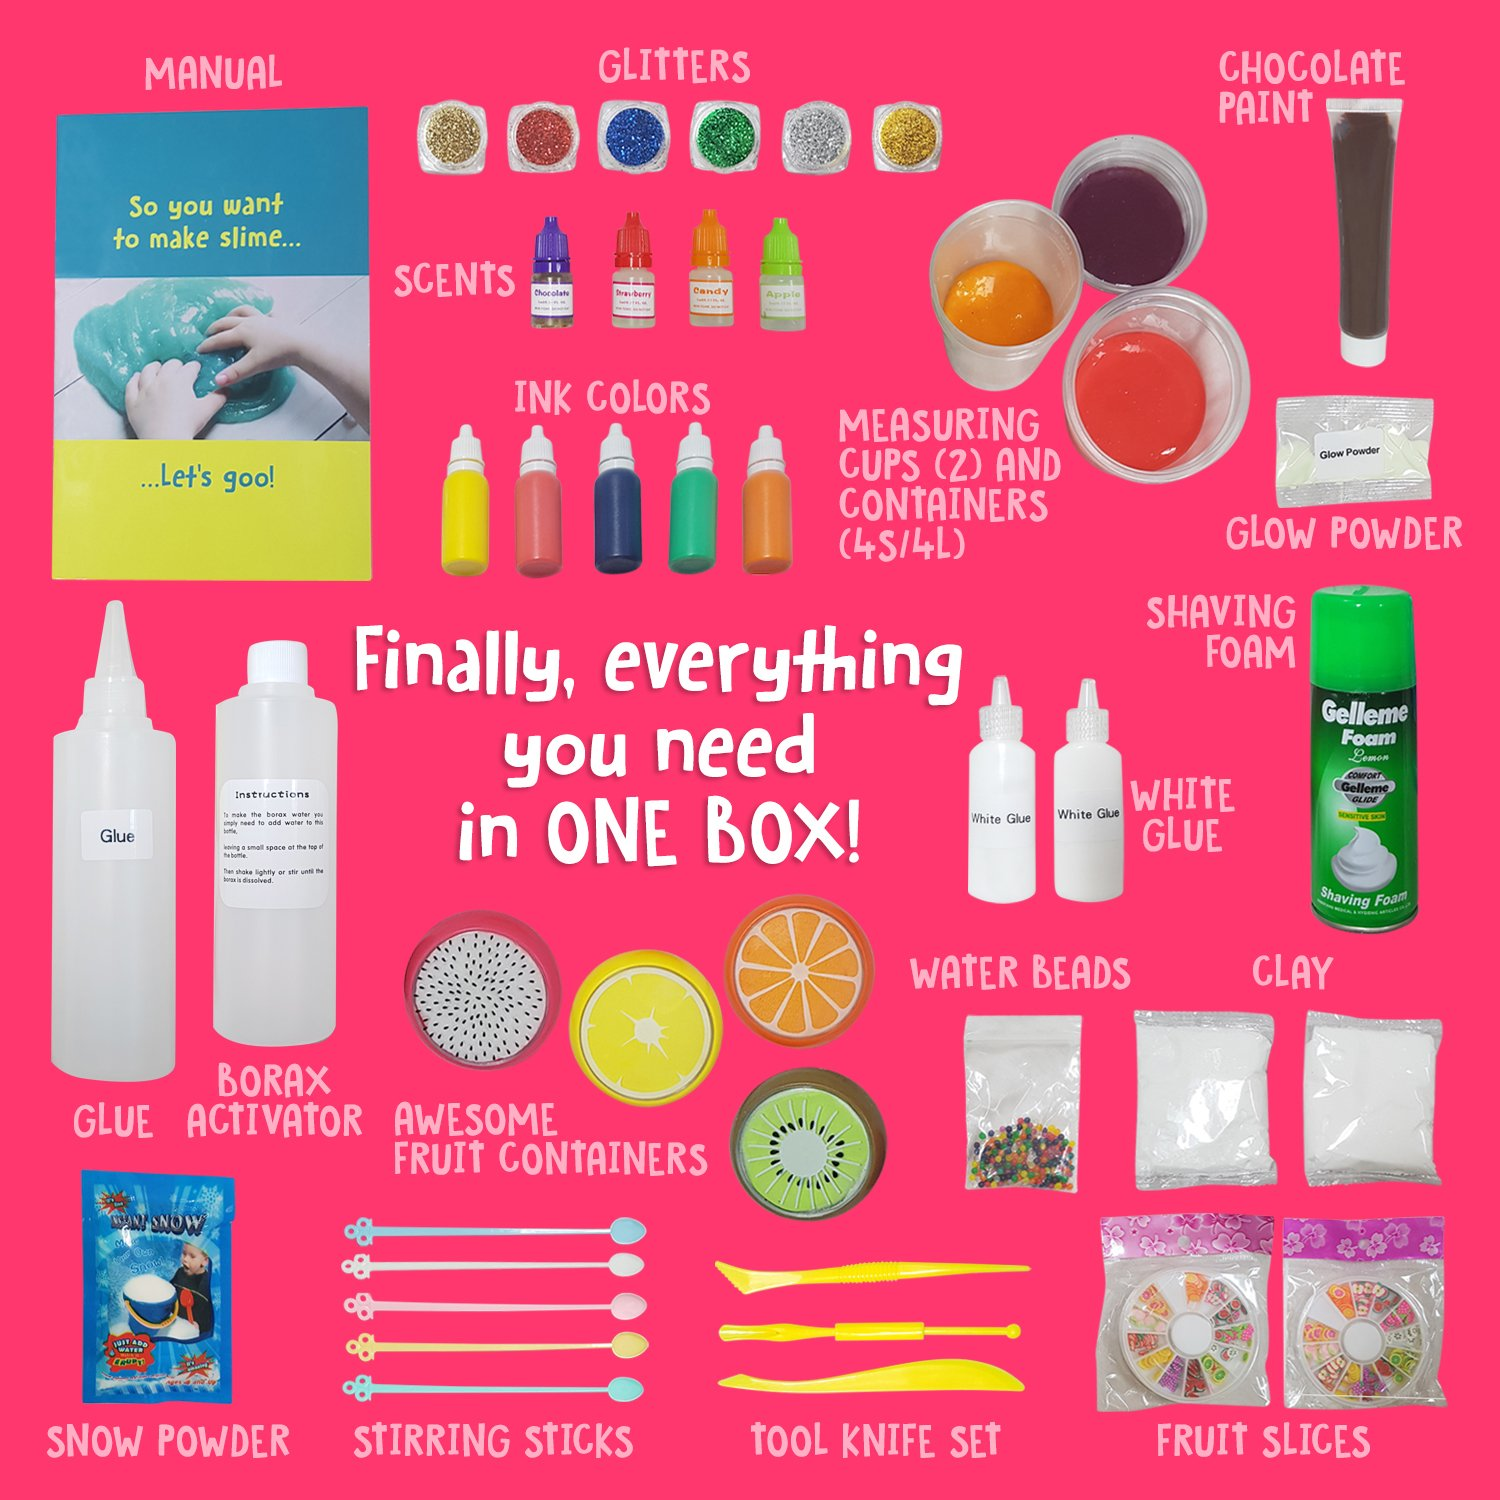 Ultimate Slime Kit Supplies Stuff for Girls and Boys Making Slime [EVERYTHING IN ONE BOX] Kids can Make Unicorn, Glitter, Cloud, Rainbow Slimes and More. Includes Glue and Full instructions. by Original Stationery (Image #3)